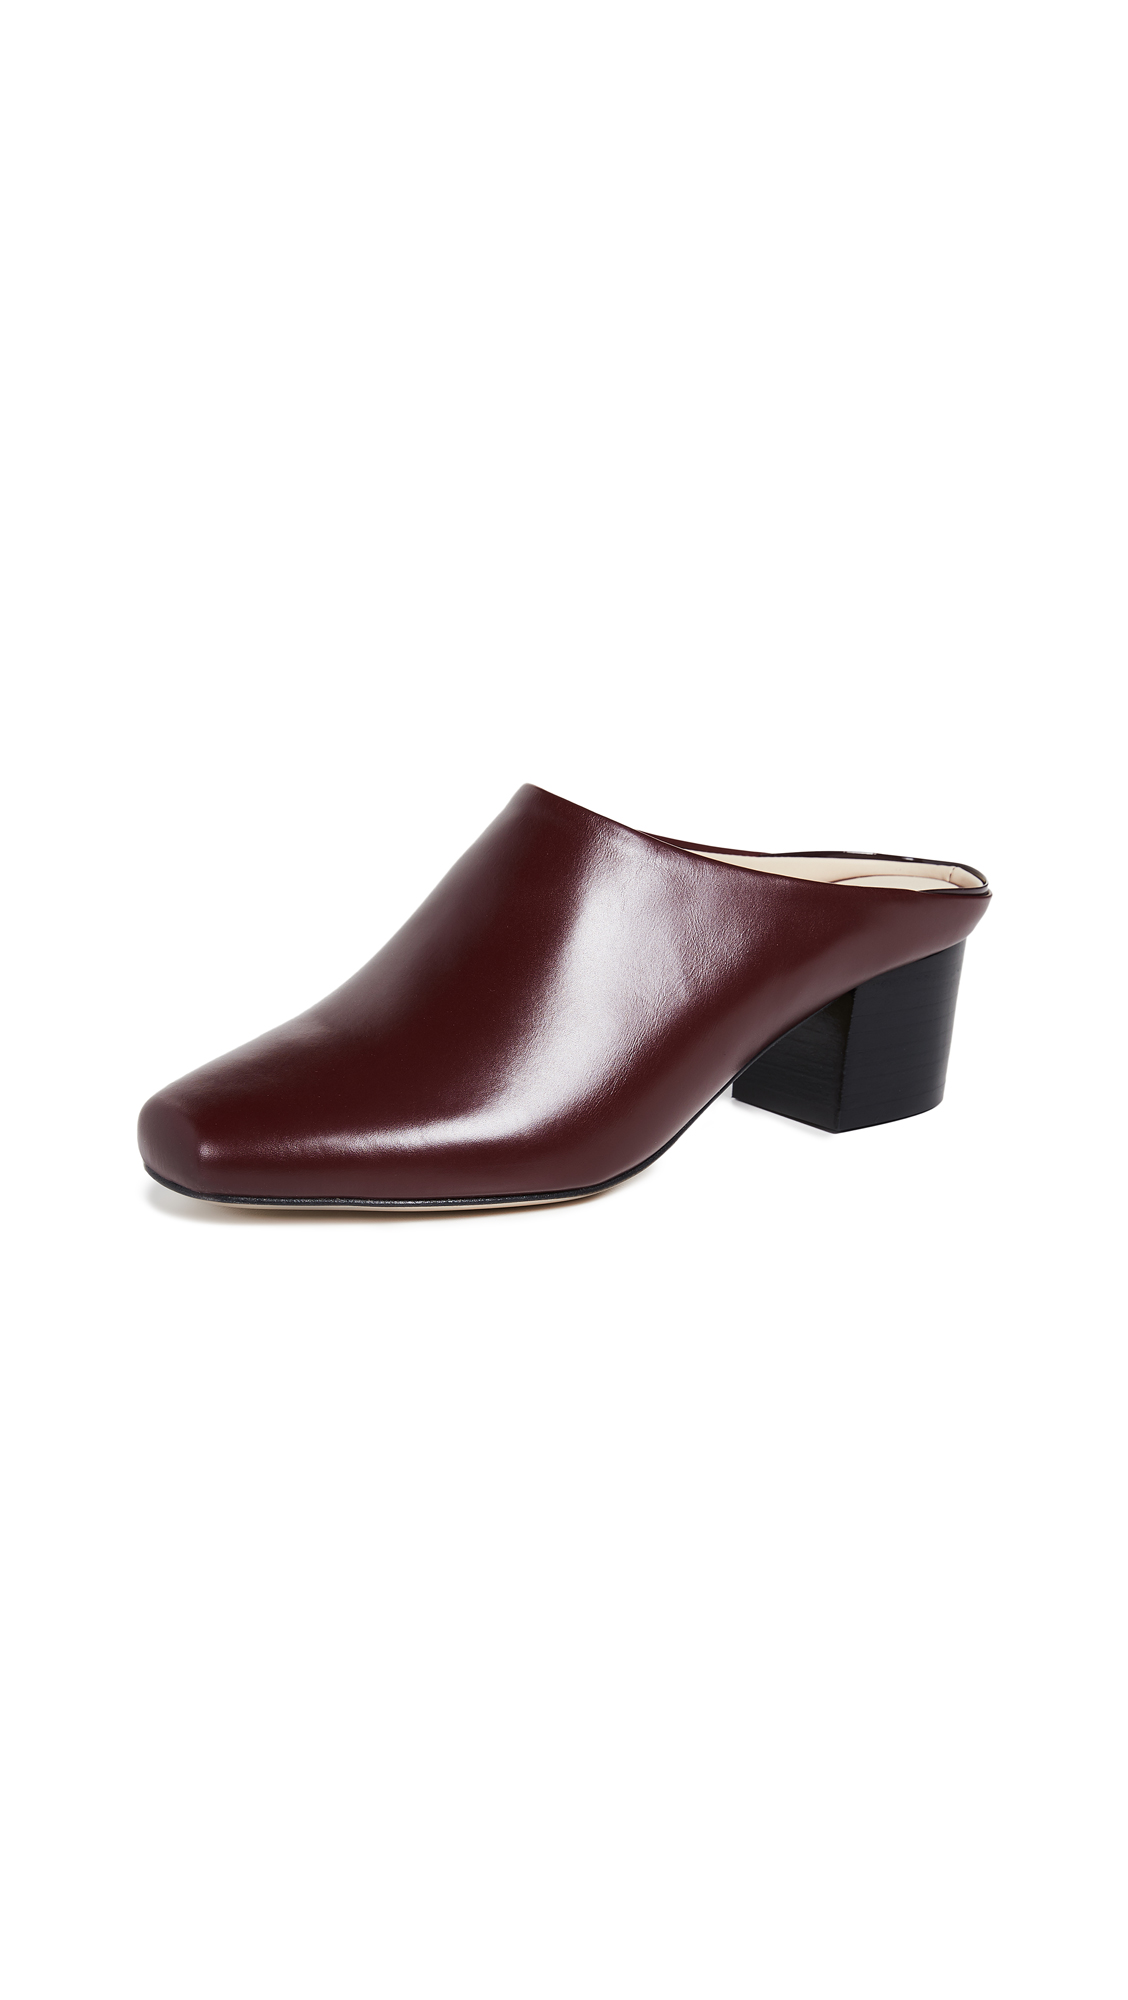 WANT Les Essentiels Alia Mules - Collegiate Red/Black